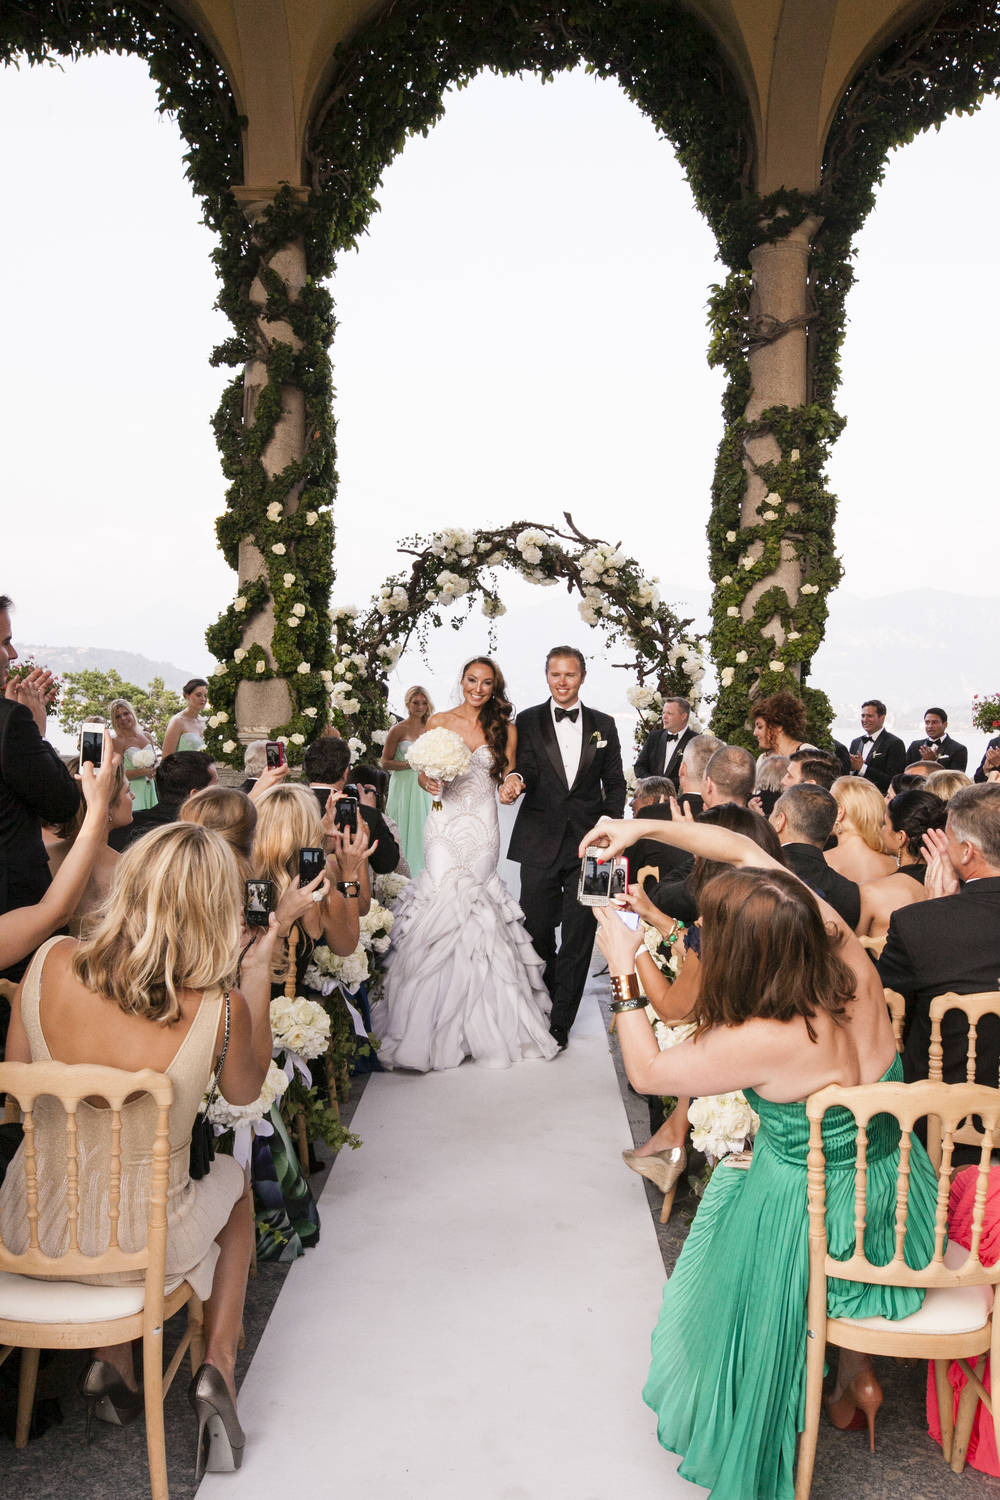 Ceci_New_York_Wedding_Lake_Como_Italy_Luxury_Style_Real_Bride_58.jpg